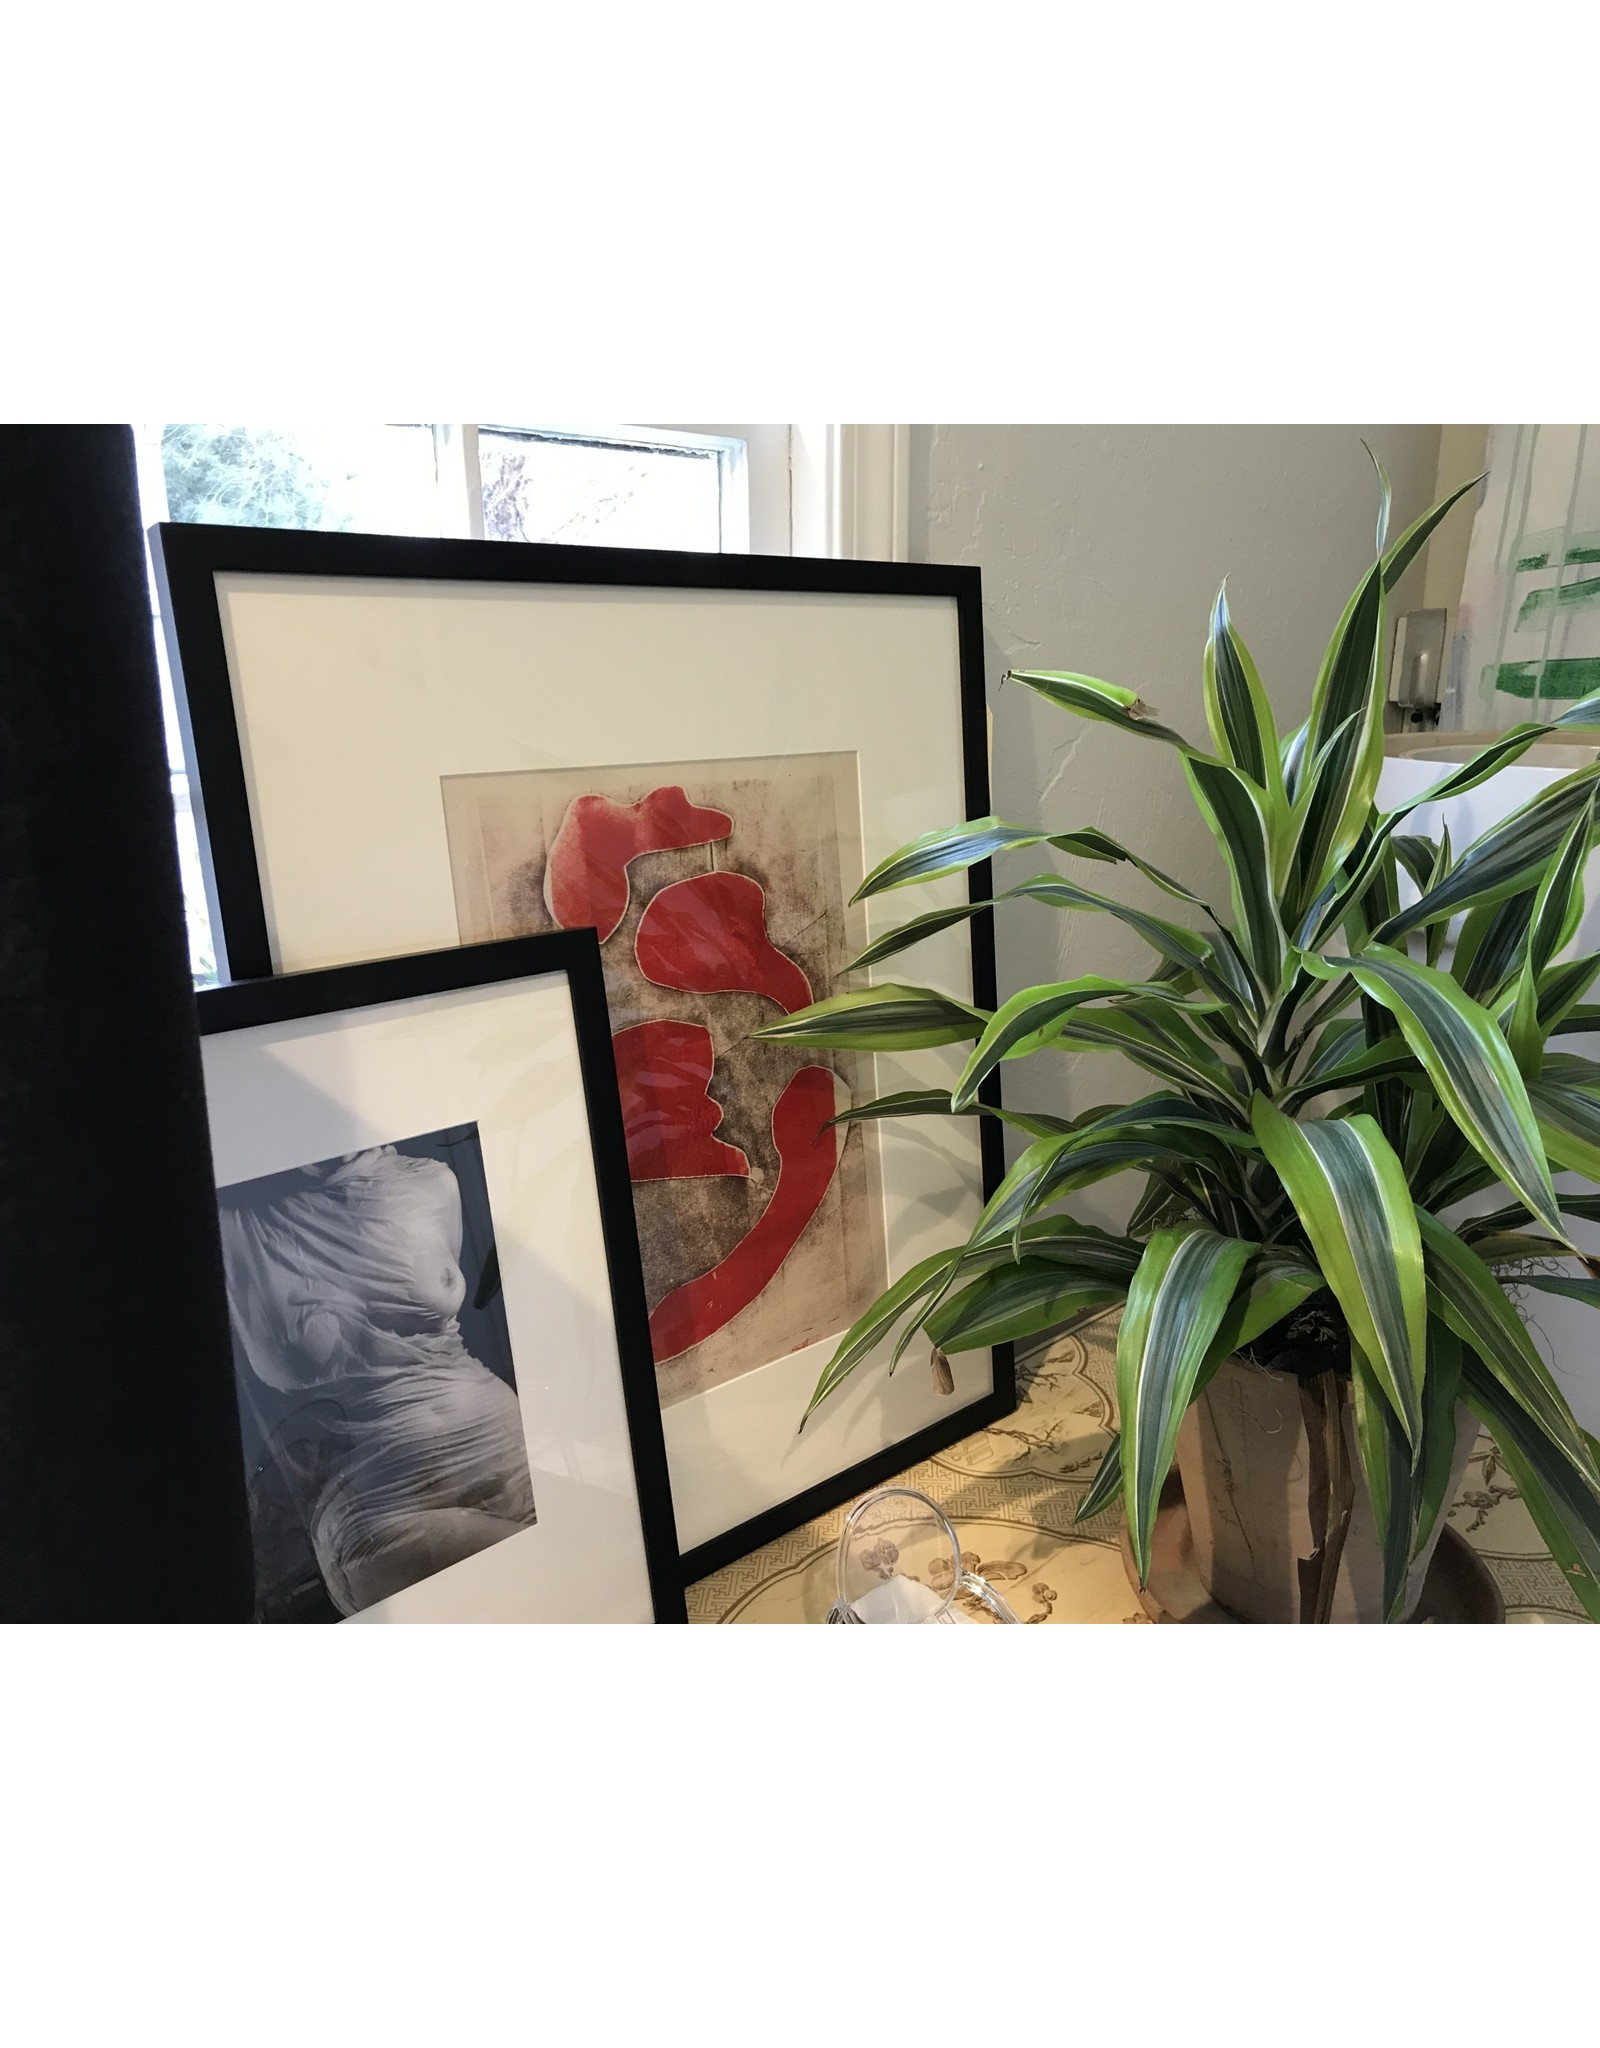 Large Paul Chidlaw with Frame- 5